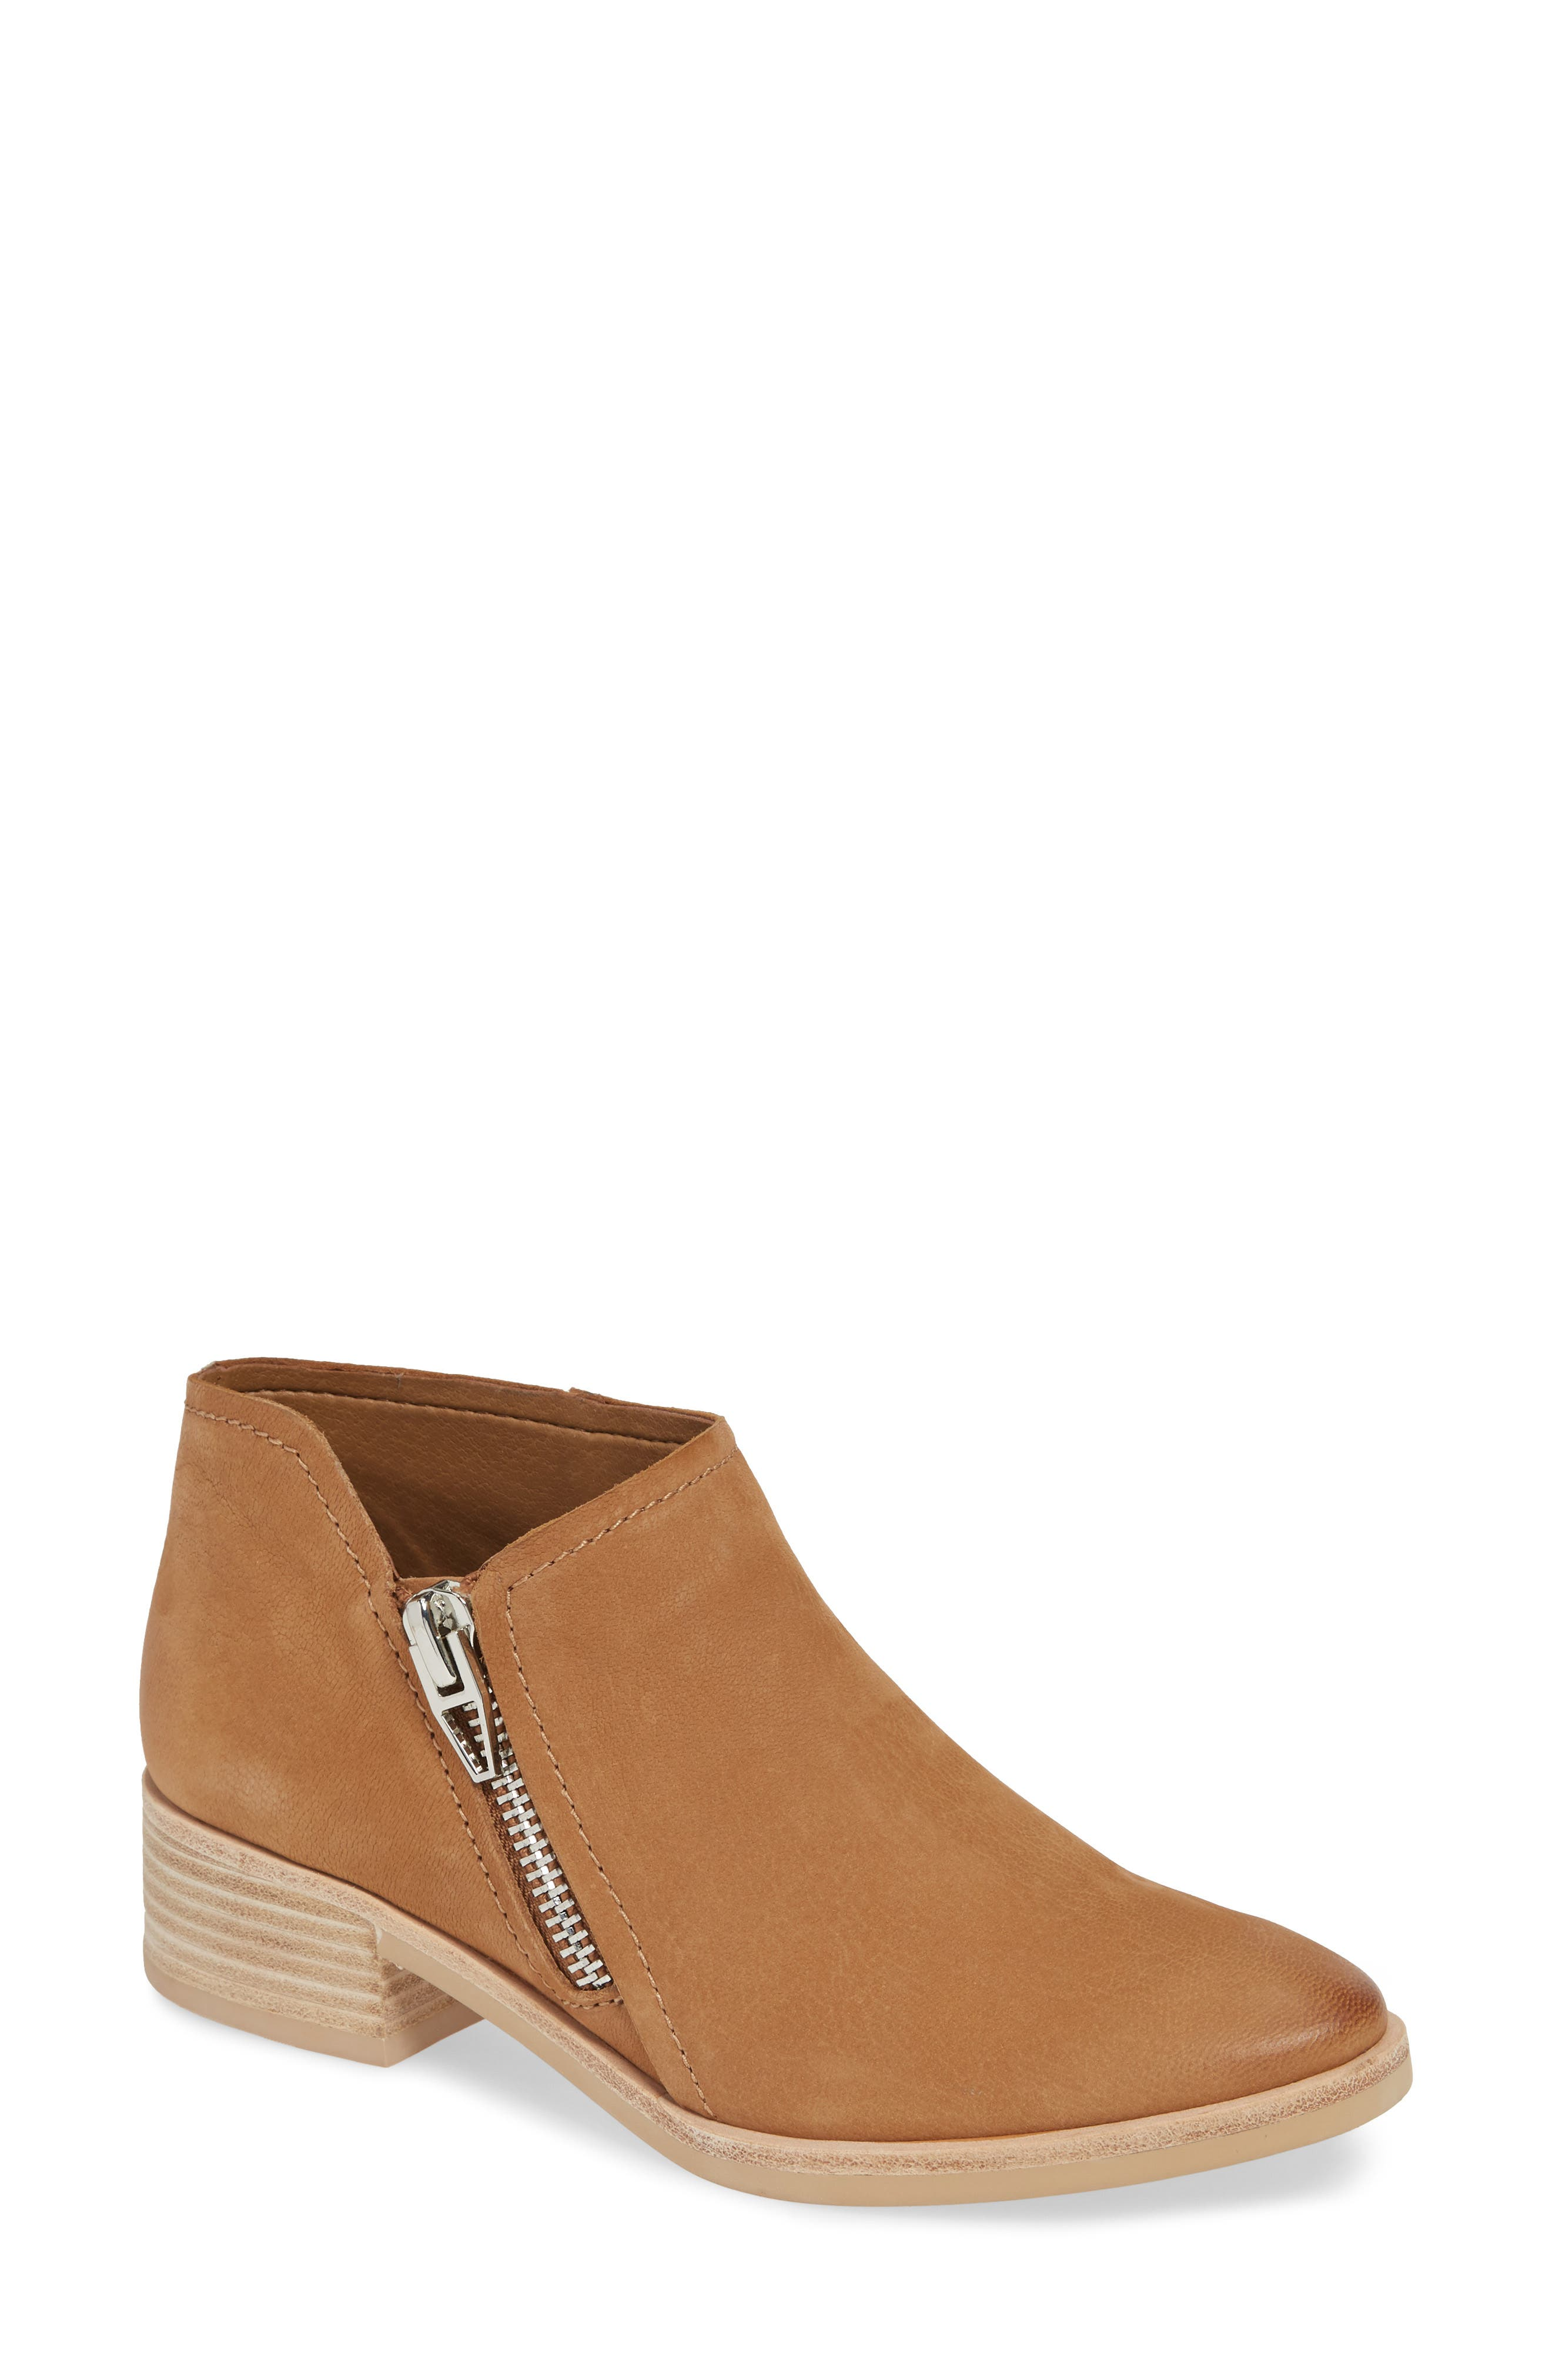 Trent Bootie,                         Main,                         color, TAUPE